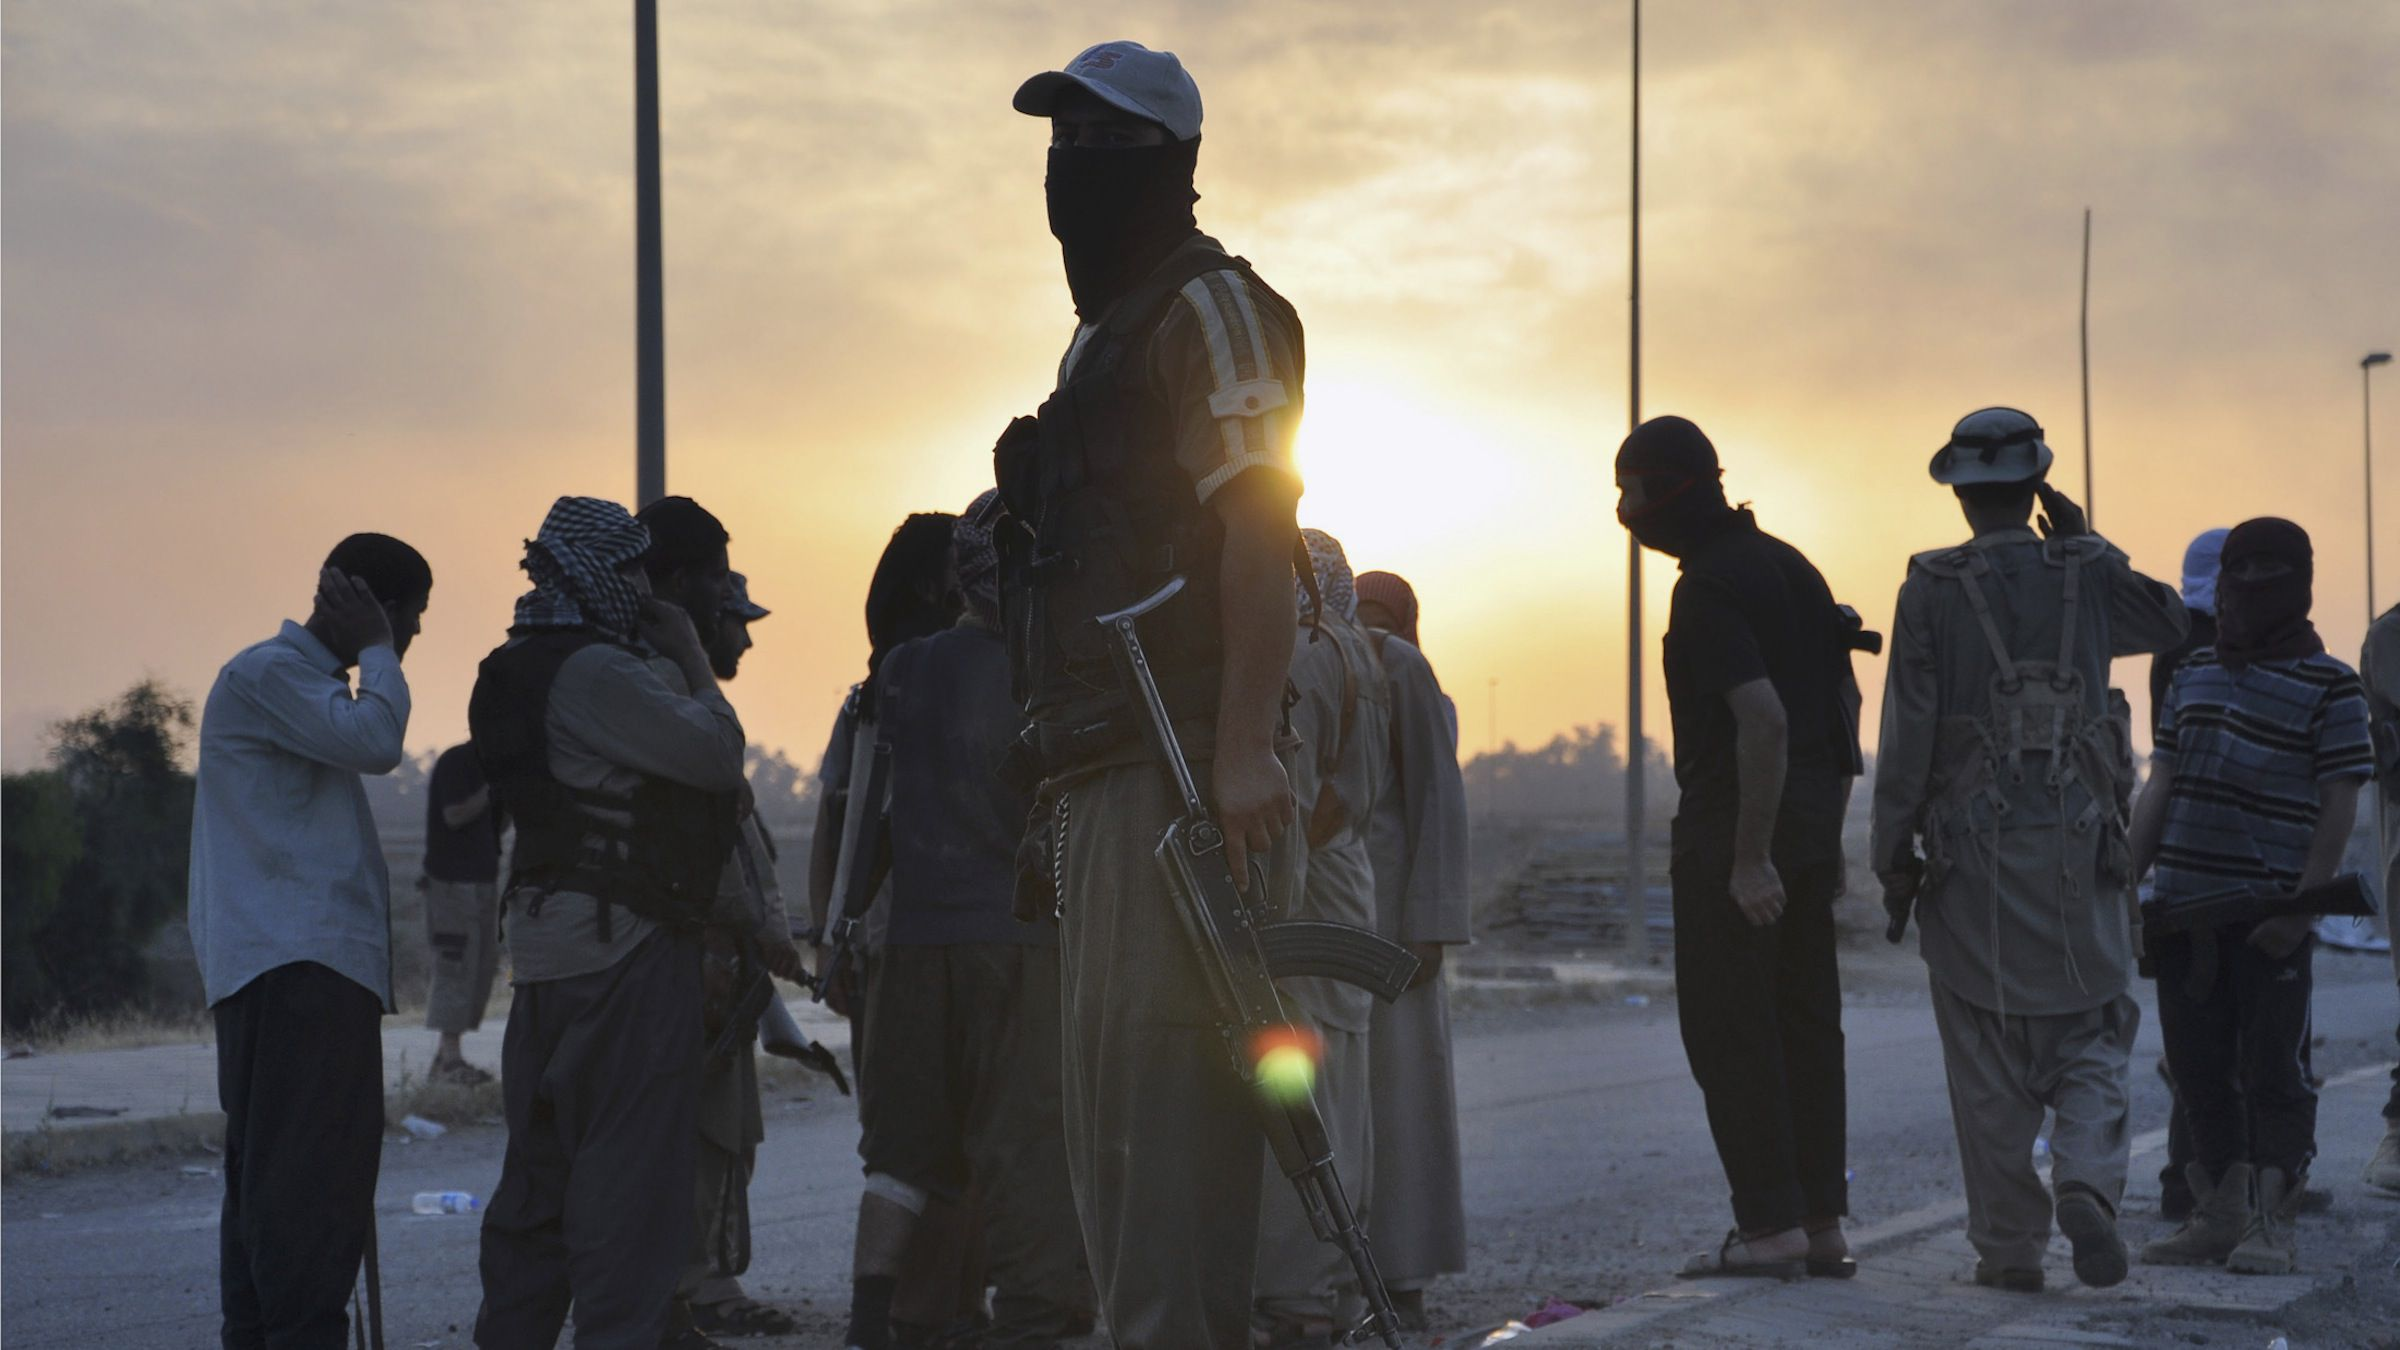 Fighters of the Islamic State of Iraq and the Levant (ISIL) stand guard at a checkpoint in the northern Iraq city of Mosul, June 11, 2014. Since Tuesday, black clad ISIL fighters have seized Iraq's second biggest city Mosul and Tikrit, home town of former dictator Saddam Hussein, as well as other towns and cities north of Baghdad. They continued their lightning advance on Thursday, moving into towns just an hour's drive from the capital. Picture taken June 11, 2014.